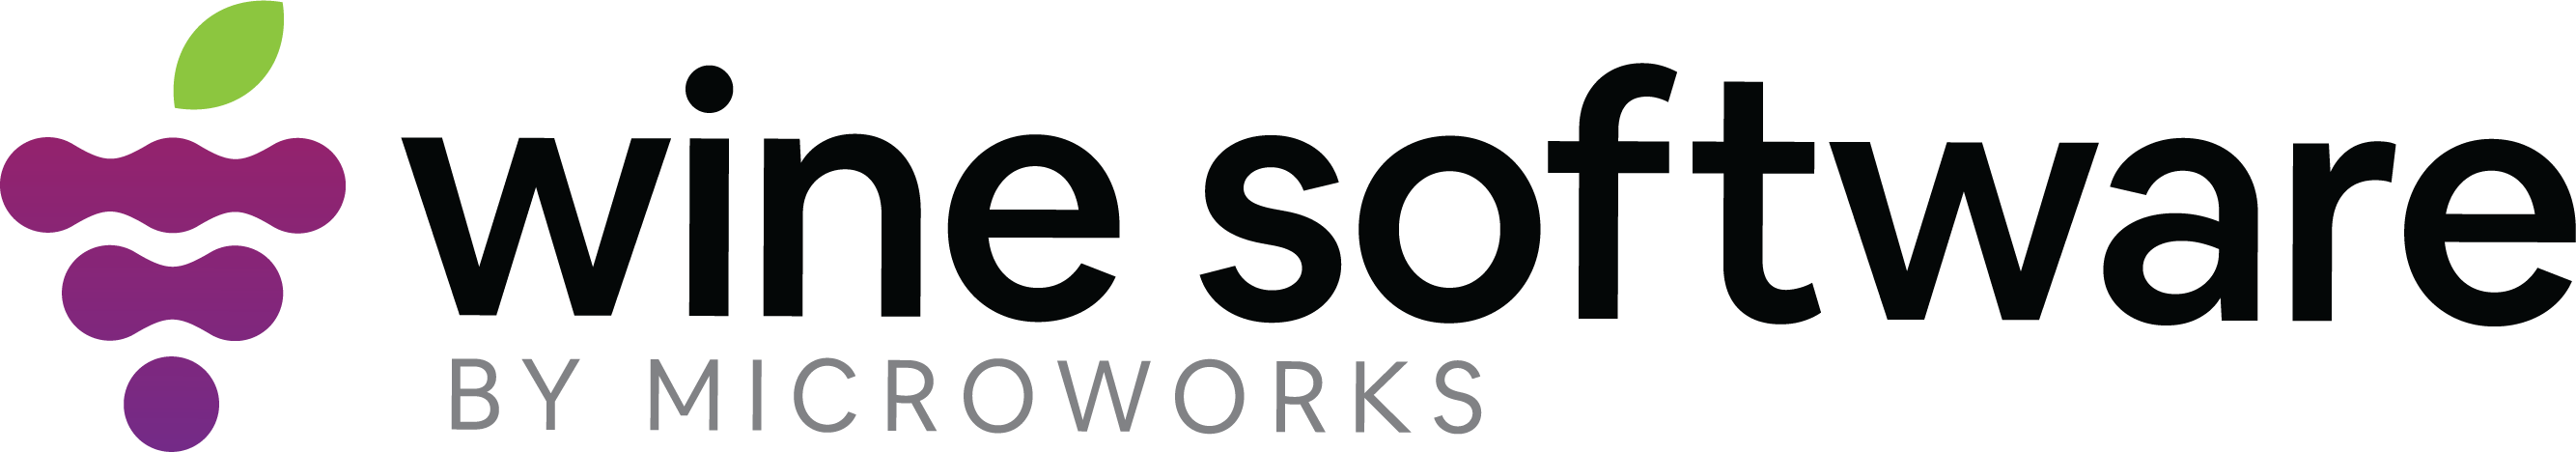 Wine Software by Microworks Logo